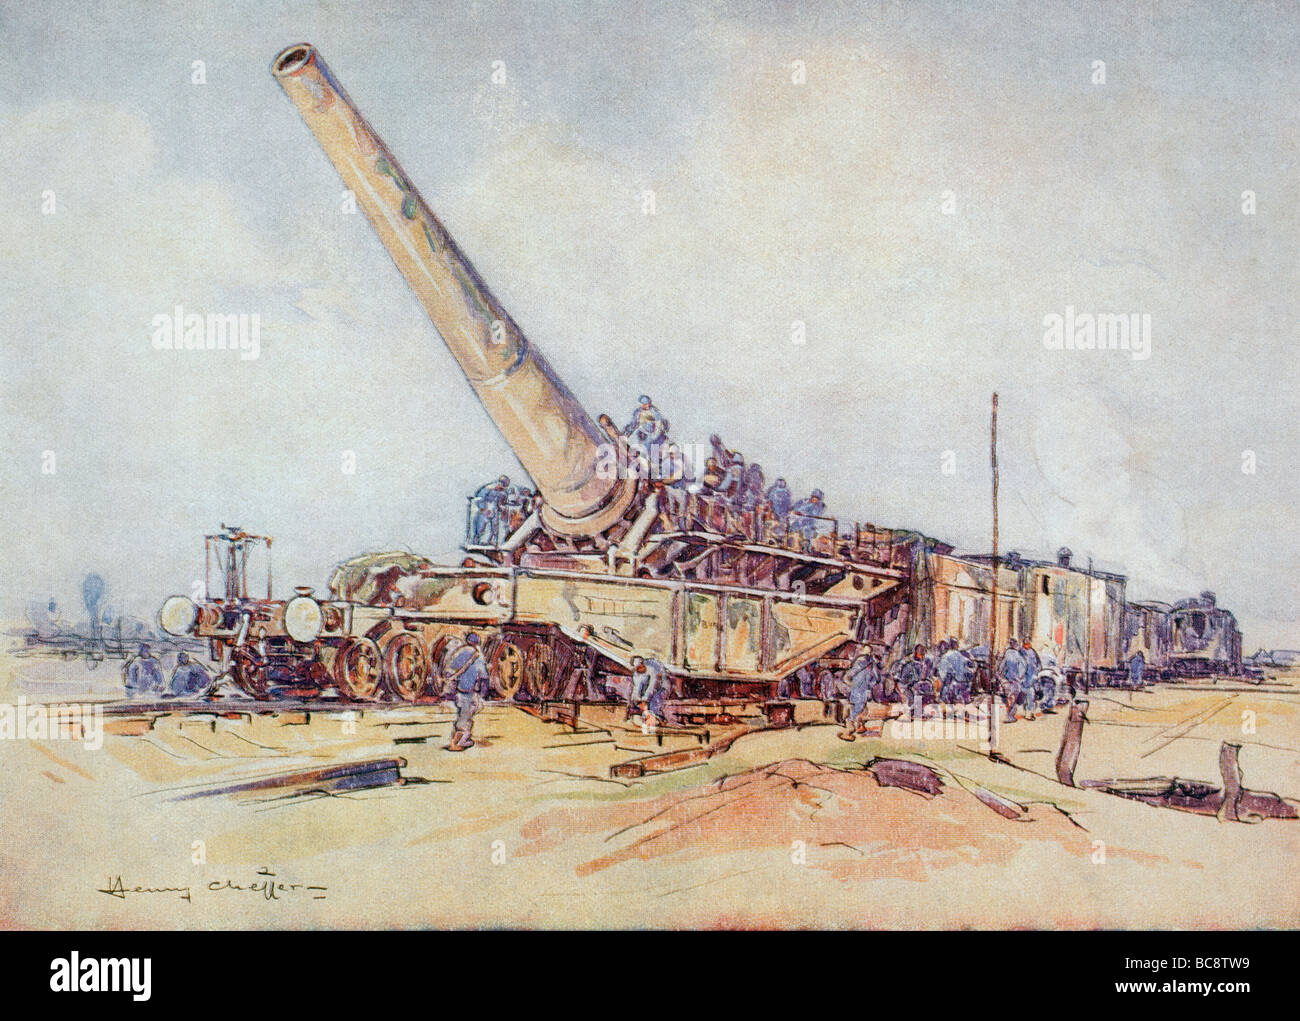 A 400mm railway howitzer in action in First World War. - Stock Image